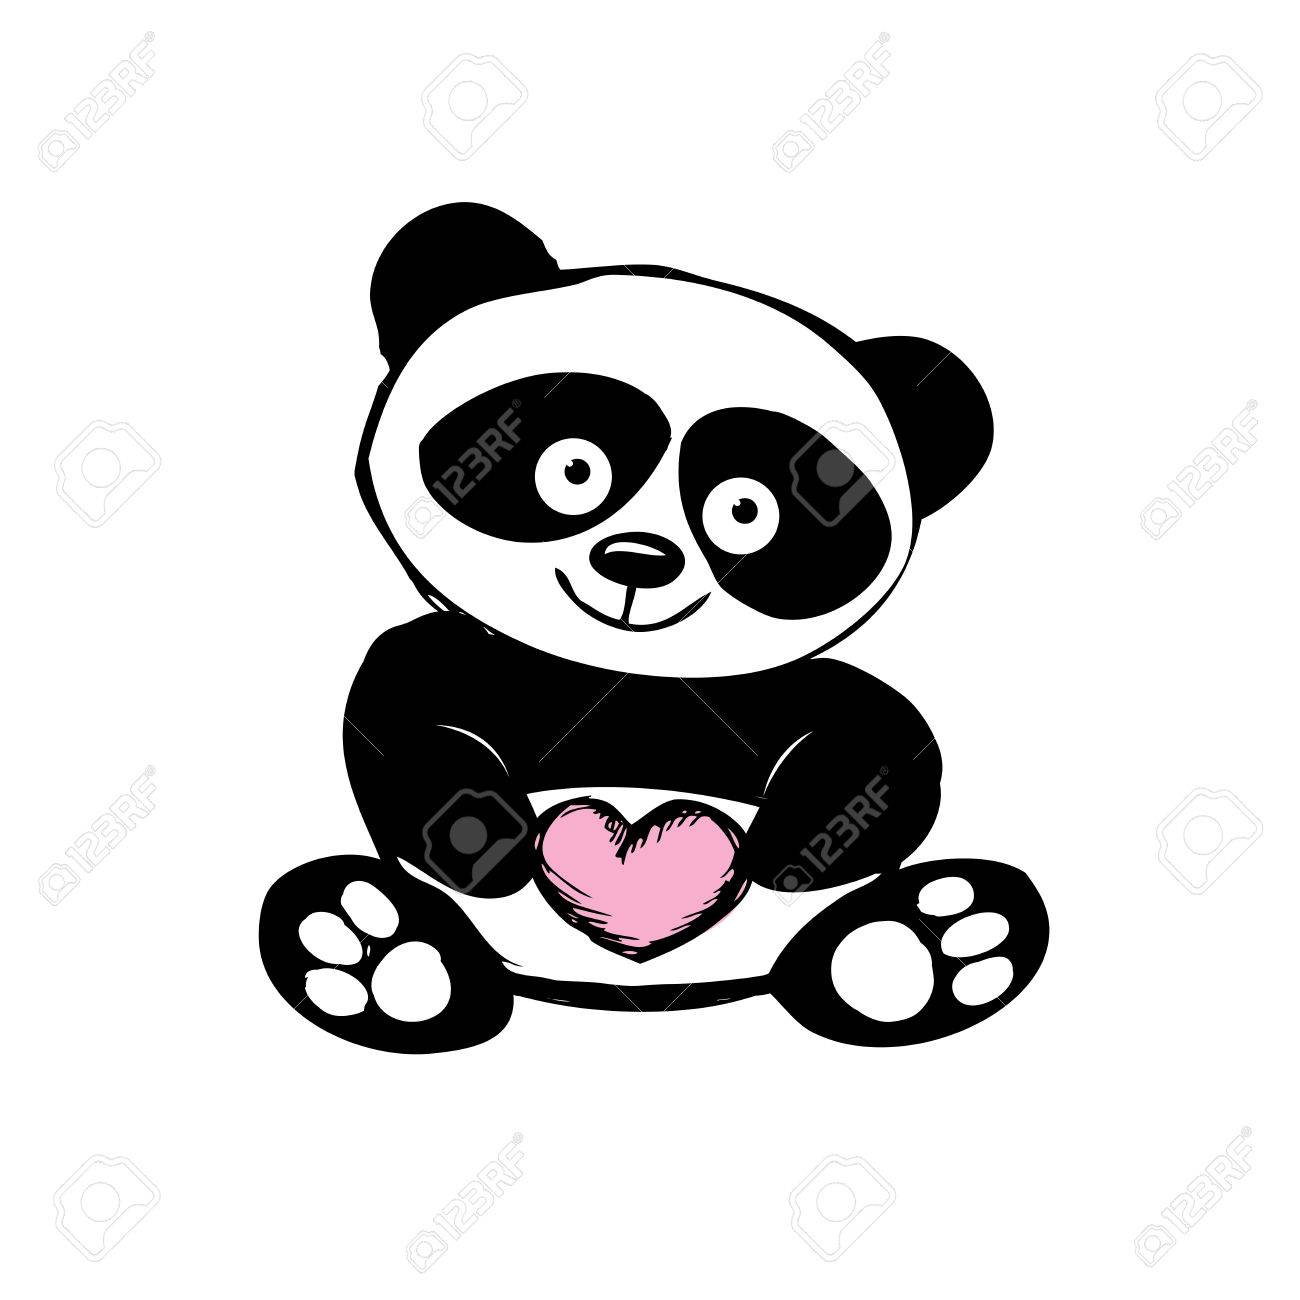 Little Cute Panda Isolated On White Hand Drawing Vector